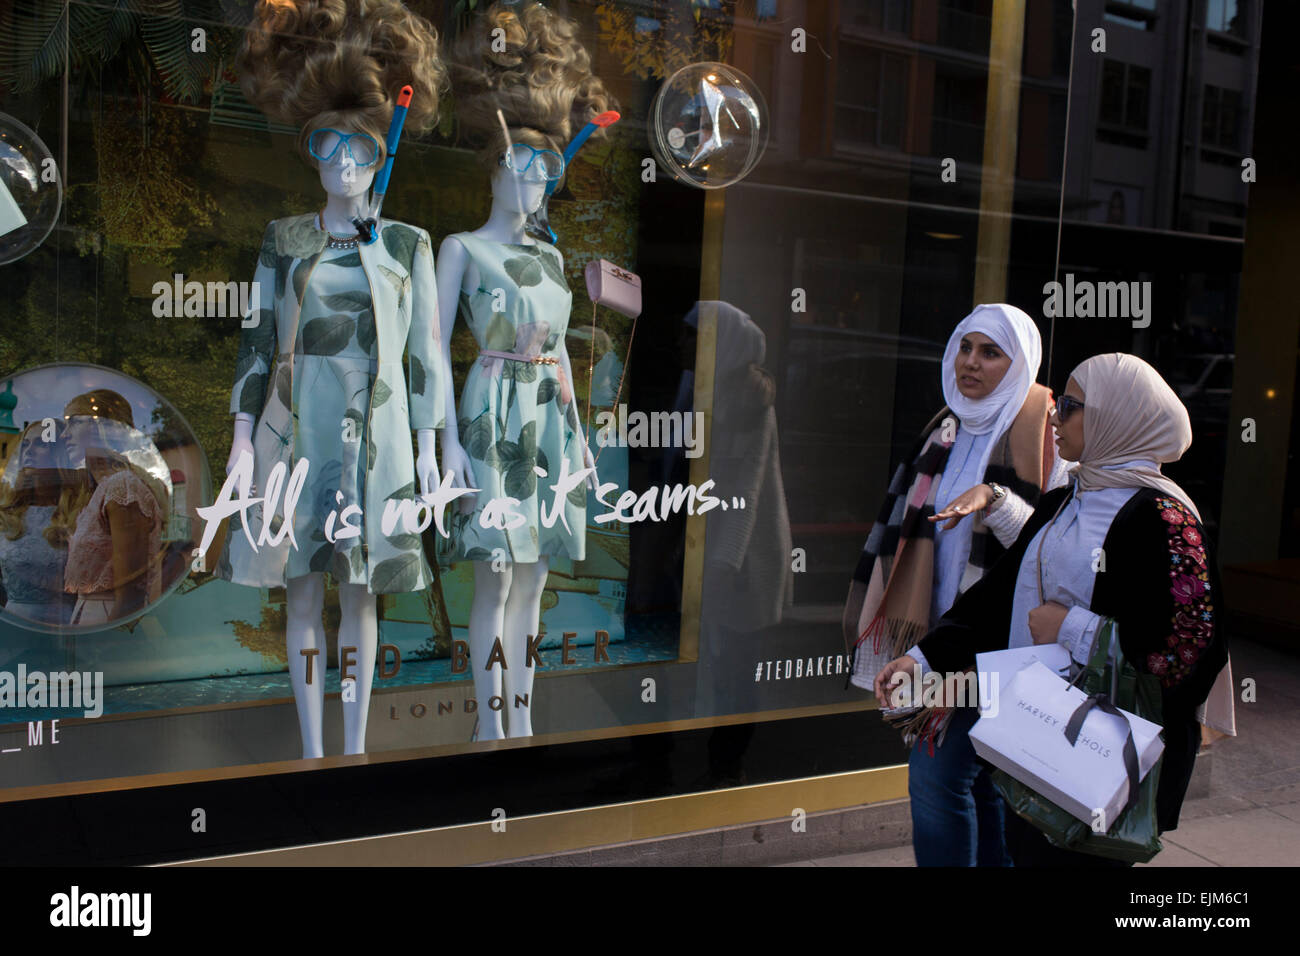 Two Muslim women walk past a display of eccentric mannequins in diving masks and snorkels, outside a central London Stock Photo